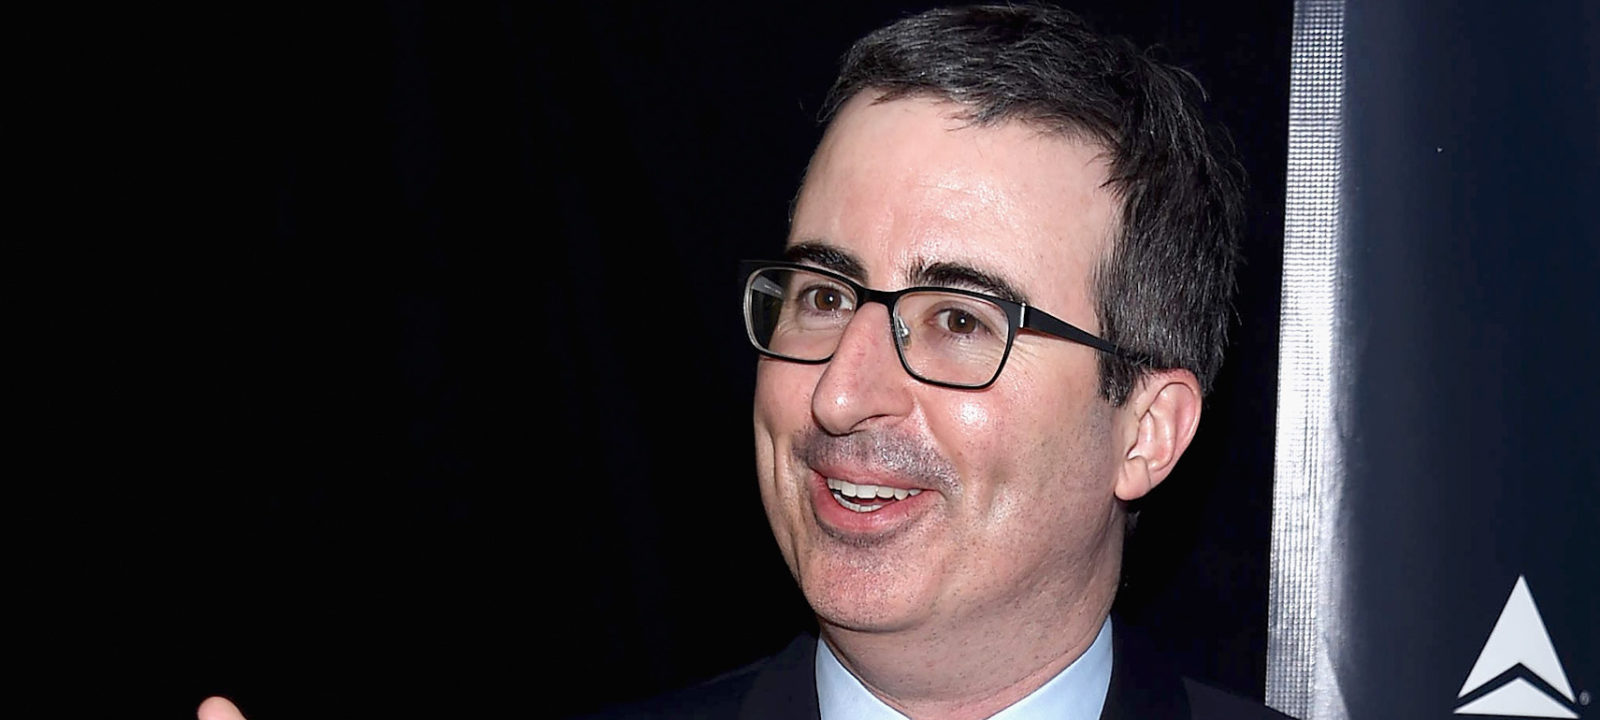 John Oliver attends the 2017 Garden Of Laughs Comedy Benefit at The Theater at Madison Square Garden on March 28, 2017 in New York City.